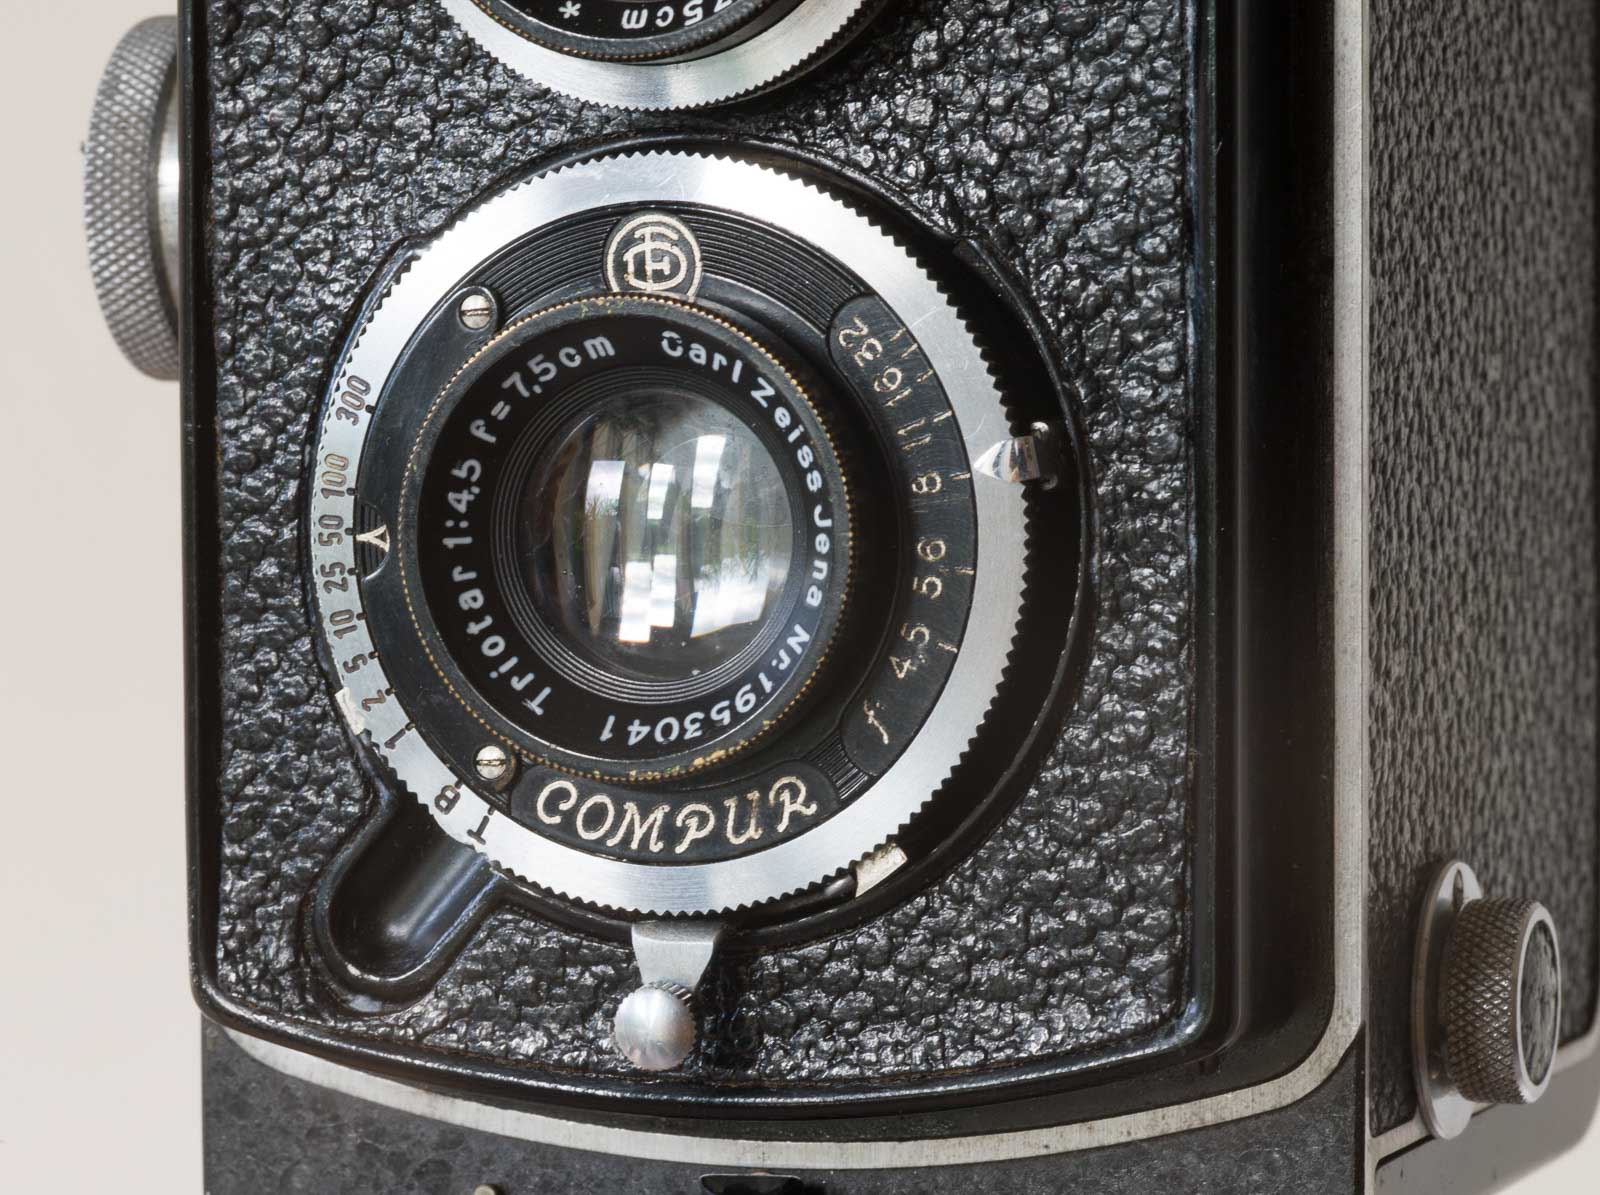 Rolleicord taking lens in Compur shutter with tensioning and release lever at bottom